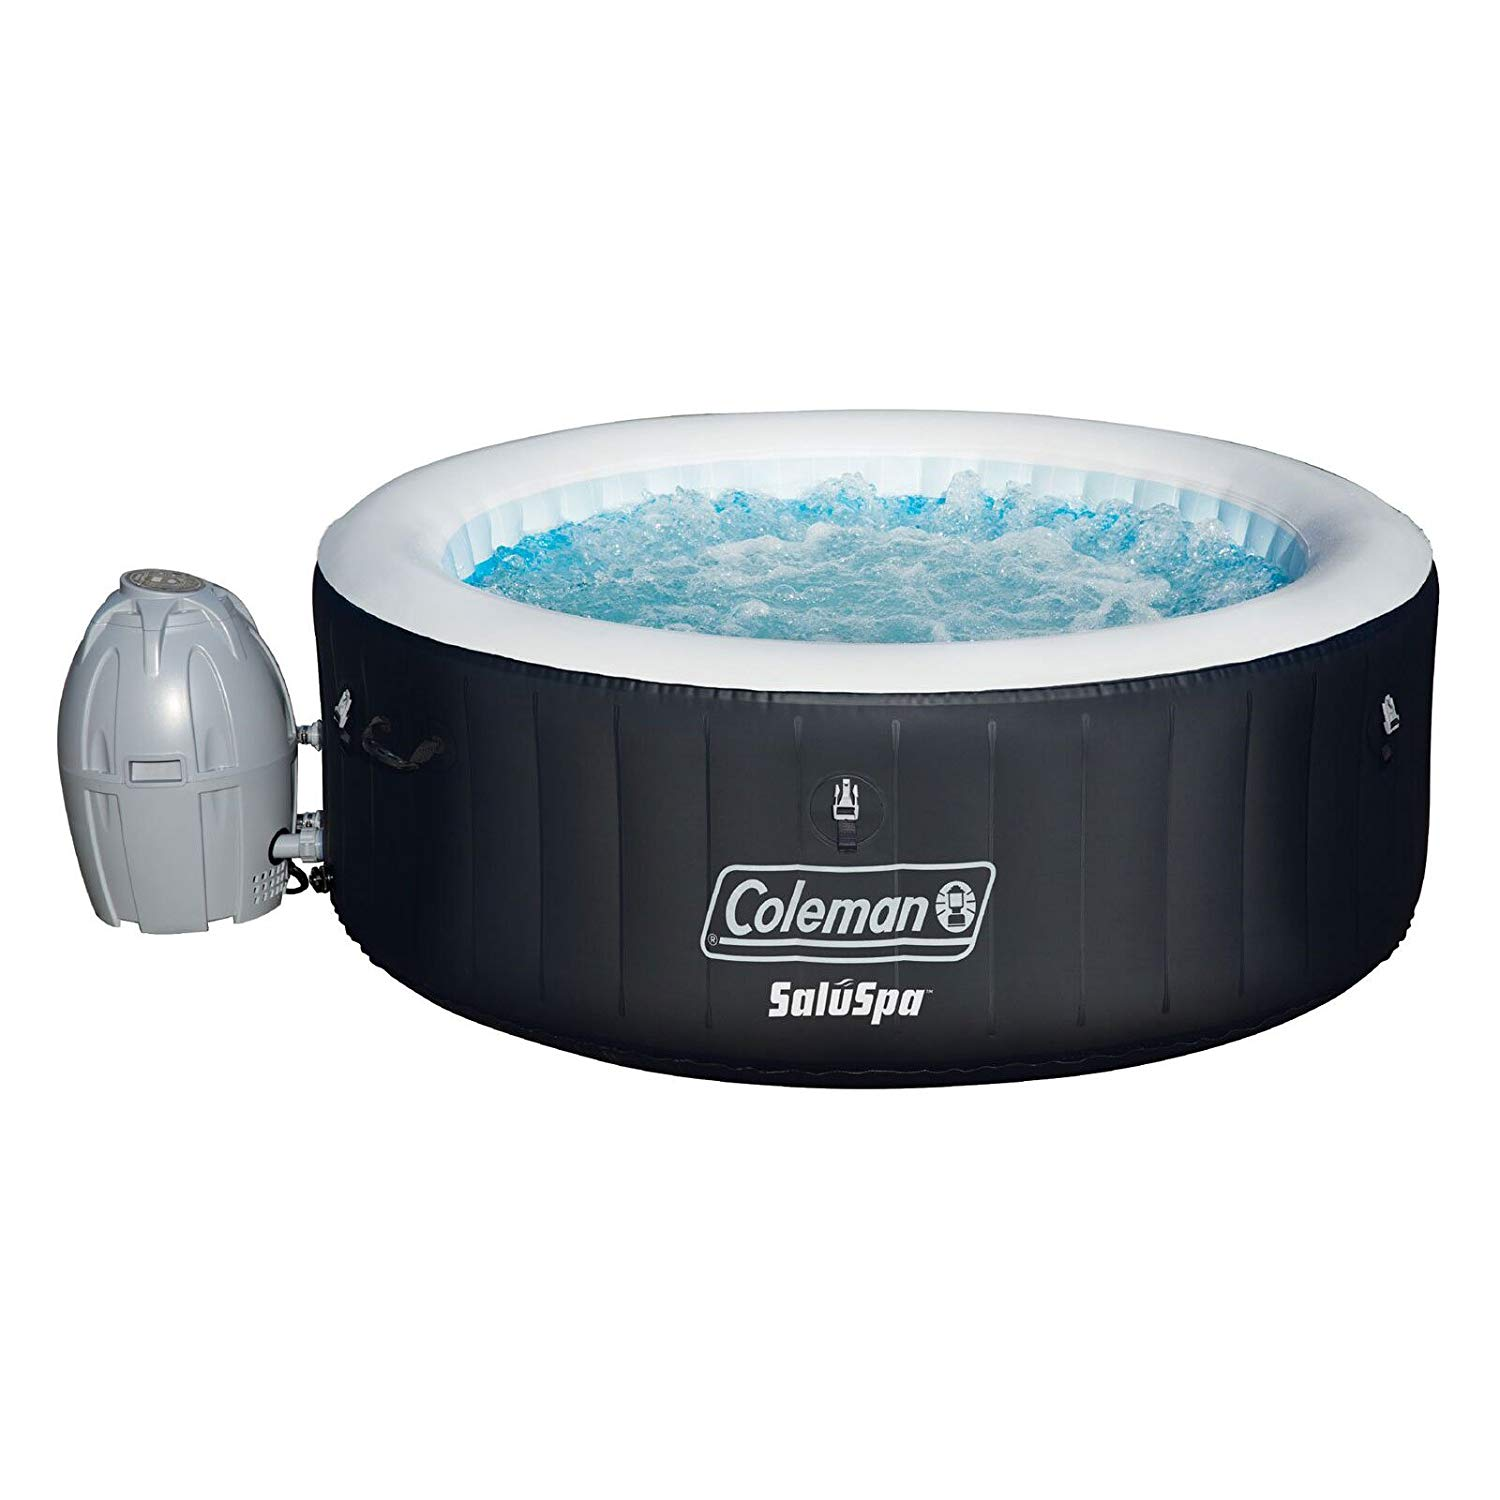 Coleman 71 X 26 inches portable inflatable spa 4-person hot Tub, black,13804